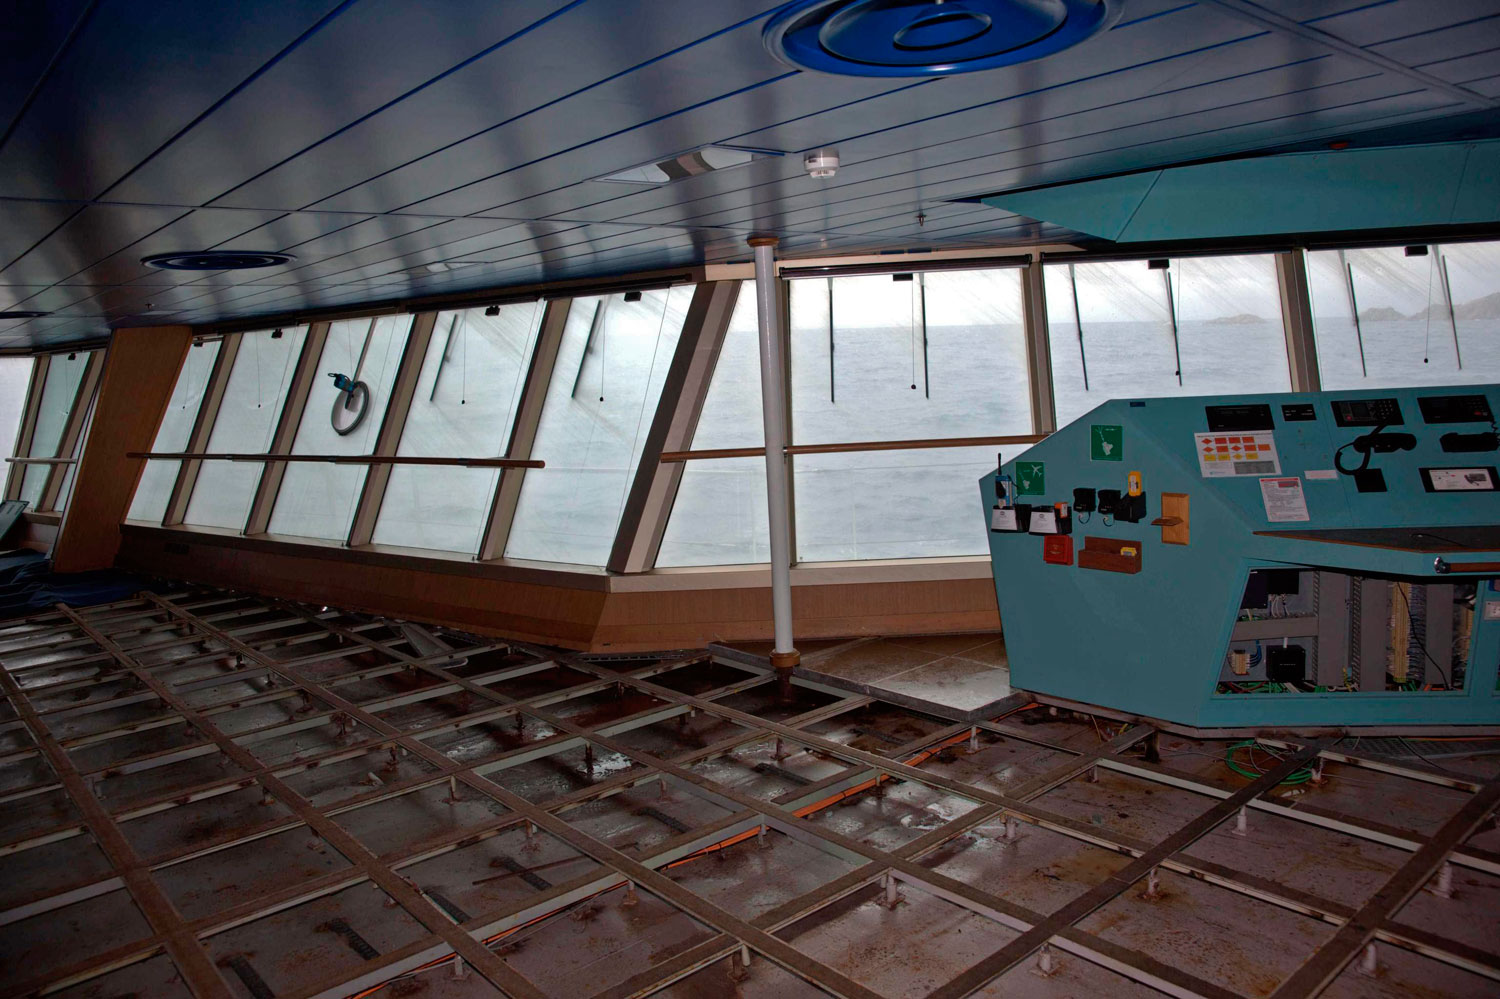 A detail in the interior of Costa Concordia cruise ship wreck off coast Giglio island, Italy on 21 July 2014. All floors of the ship were cleaned to prevent toxic chemicals from spilling into the water.